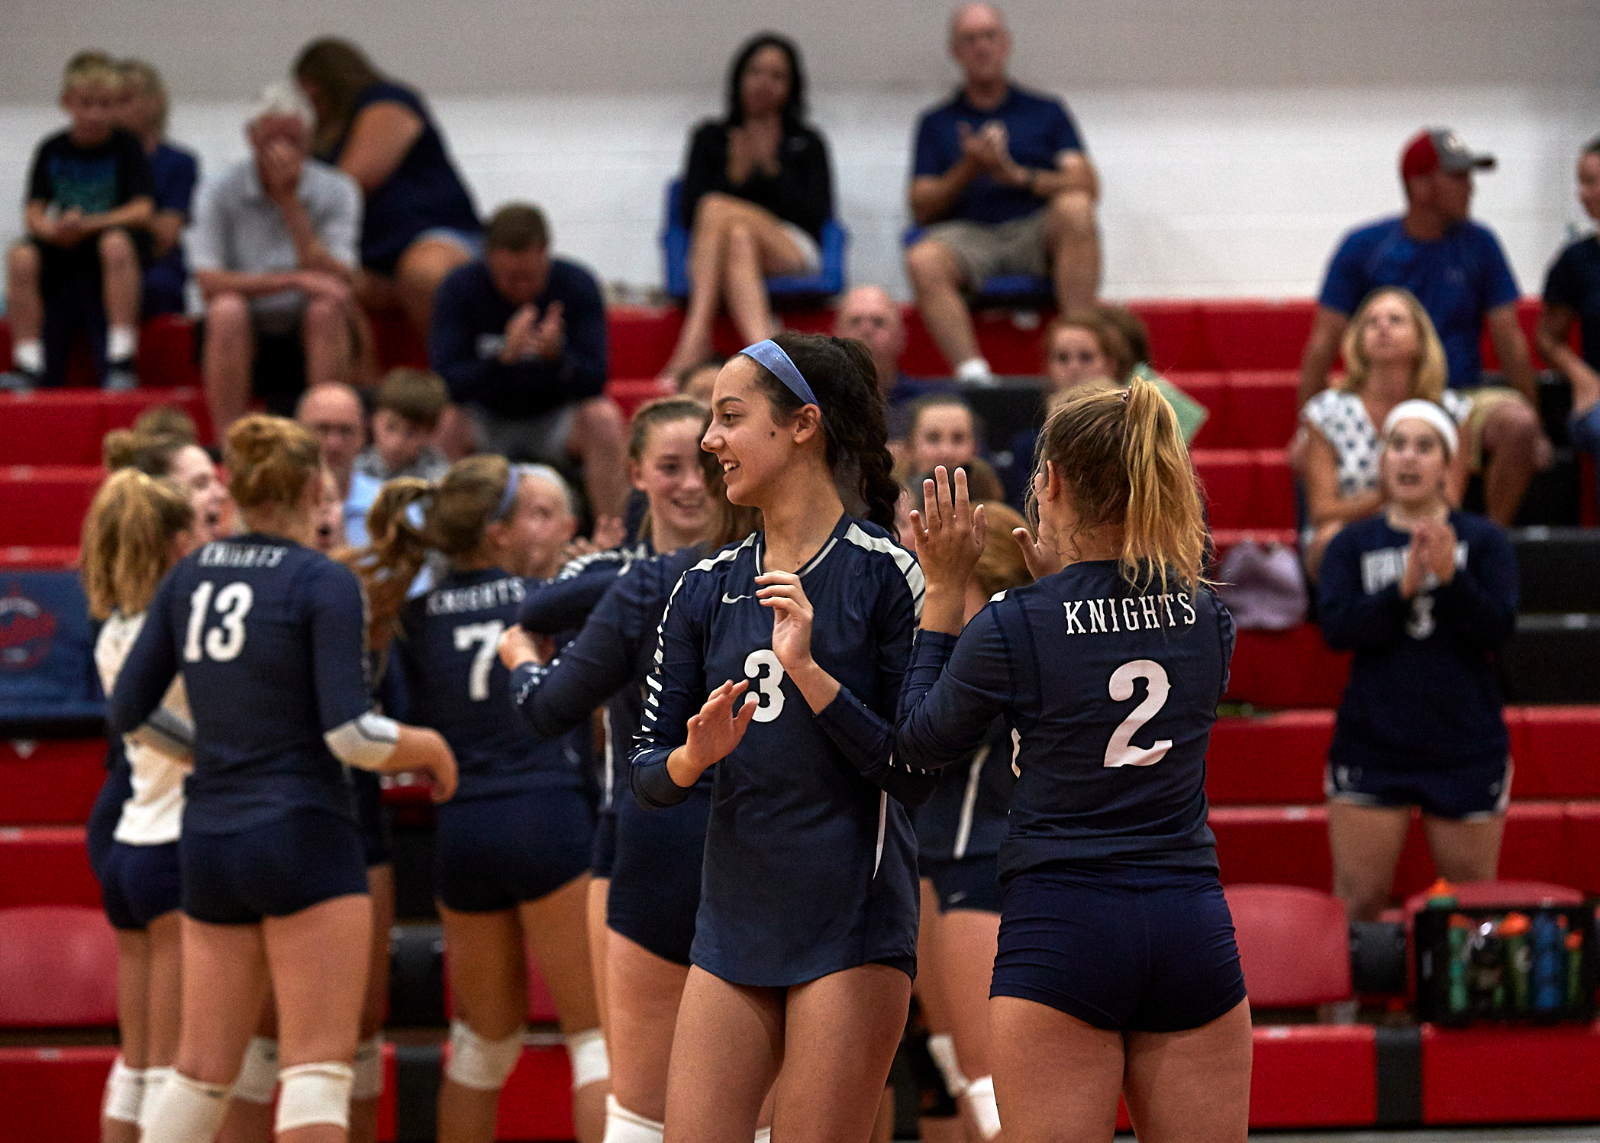 Knights sweep the Bronchos